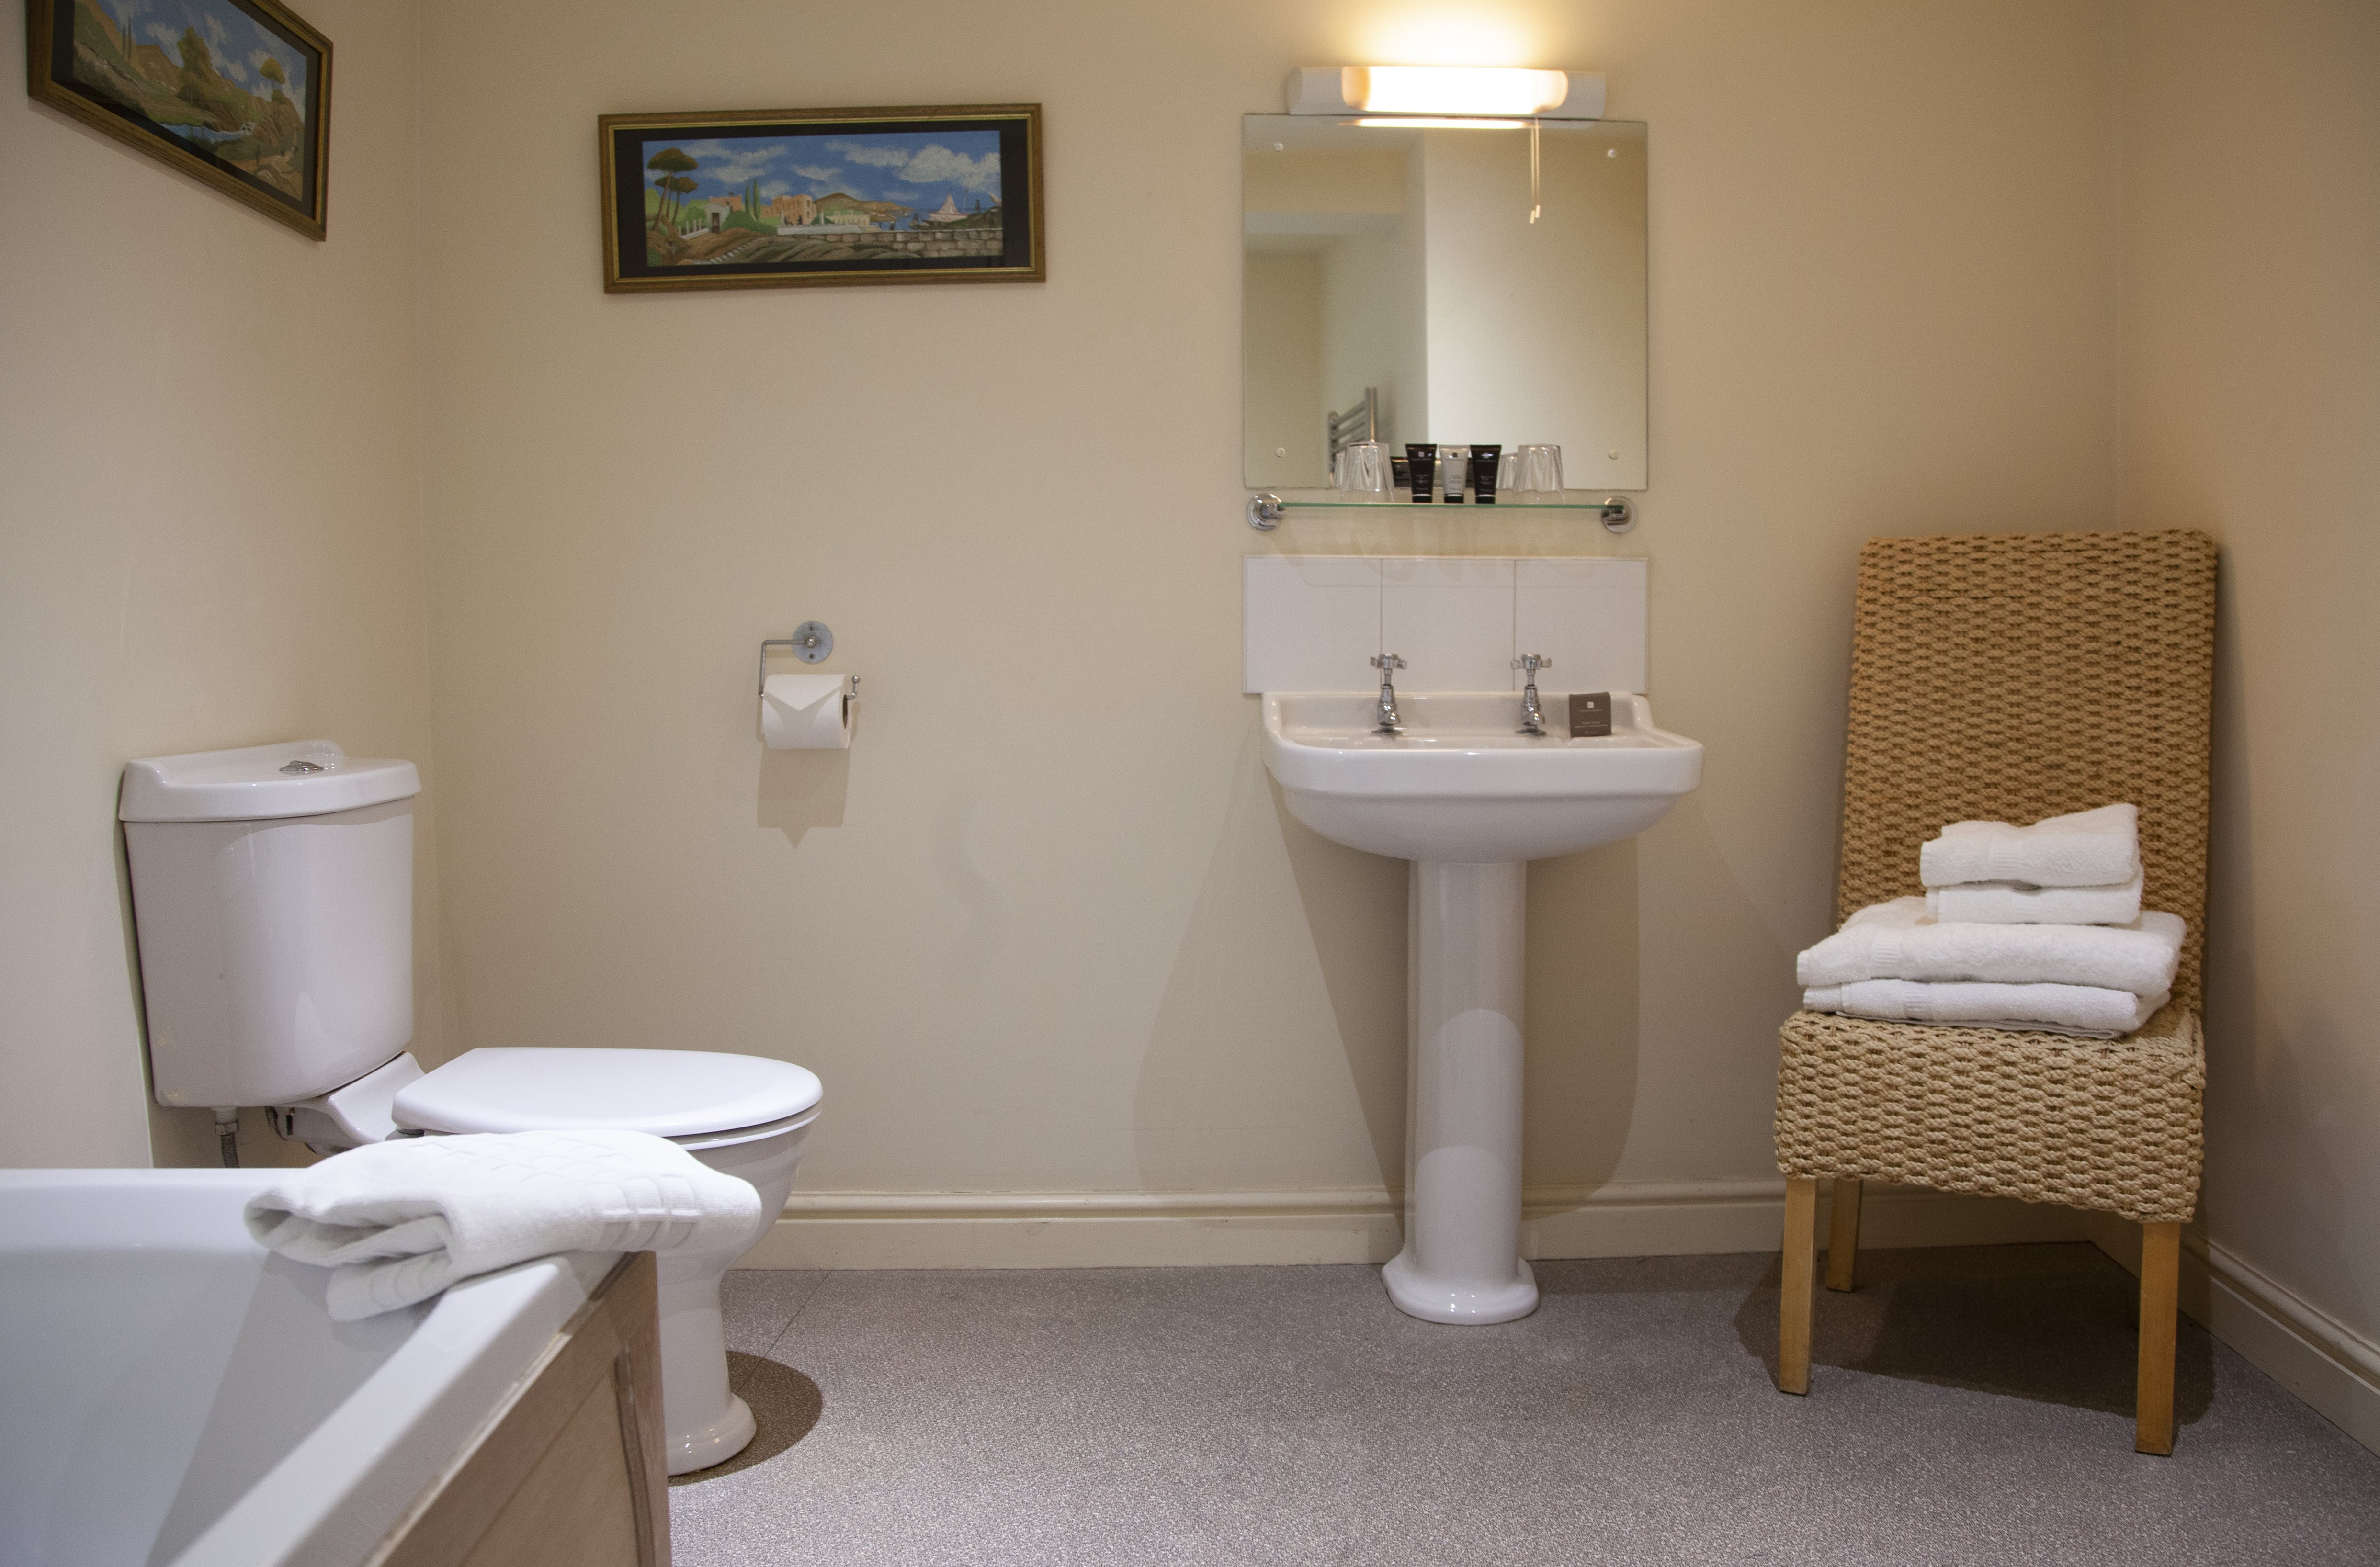 Bathroom at The Wensleydale Hotel, Middleham, offers boutique accommodation in the heart of the Yorkshire Dales